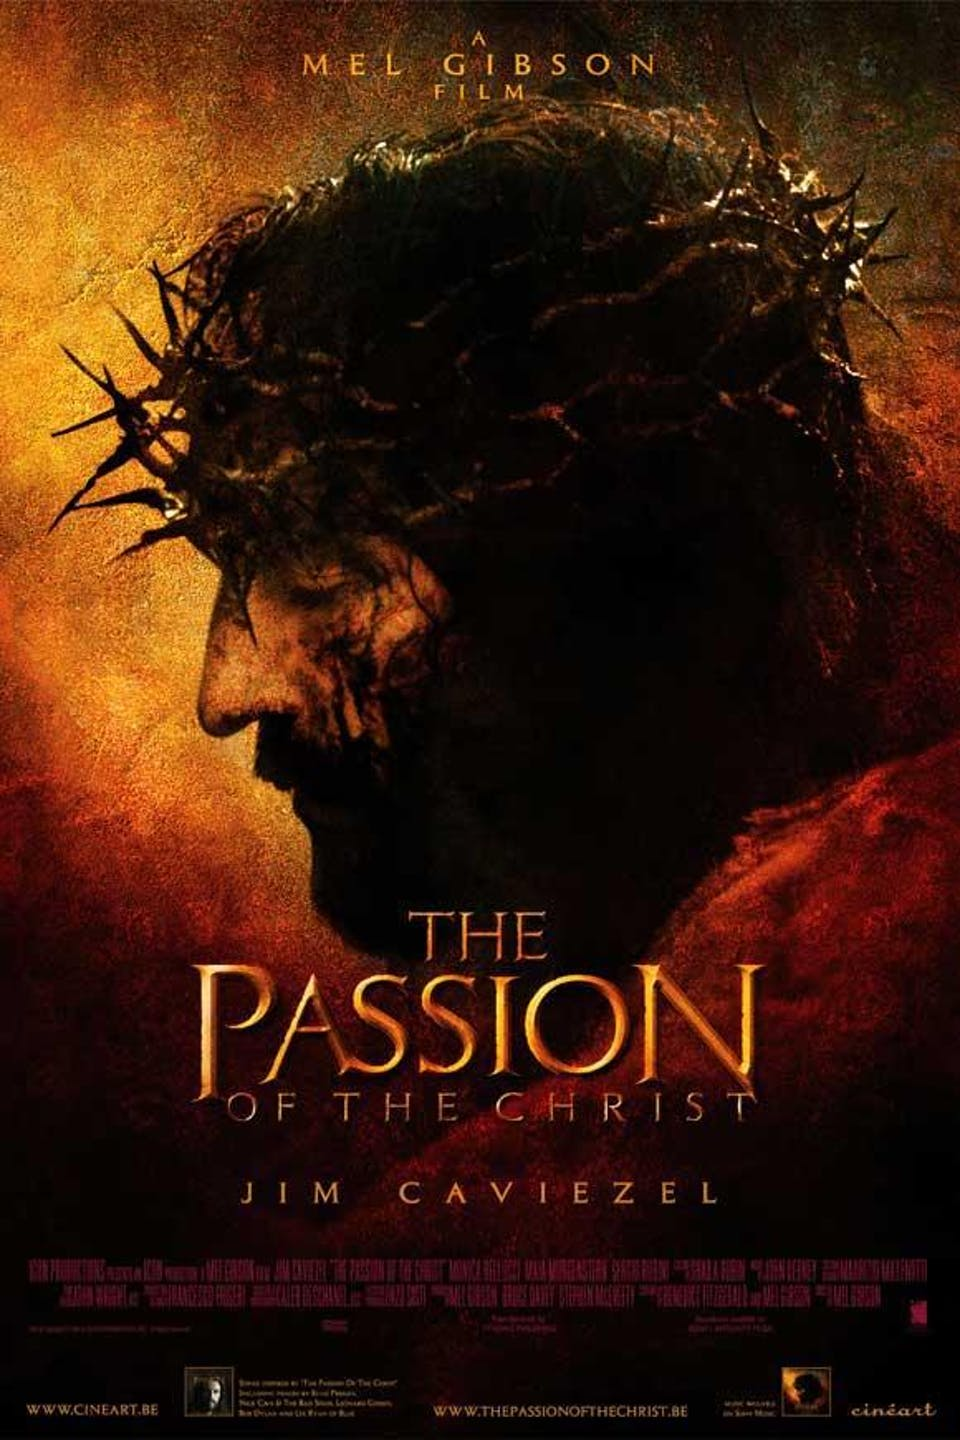 Passion of the Christ (2004)